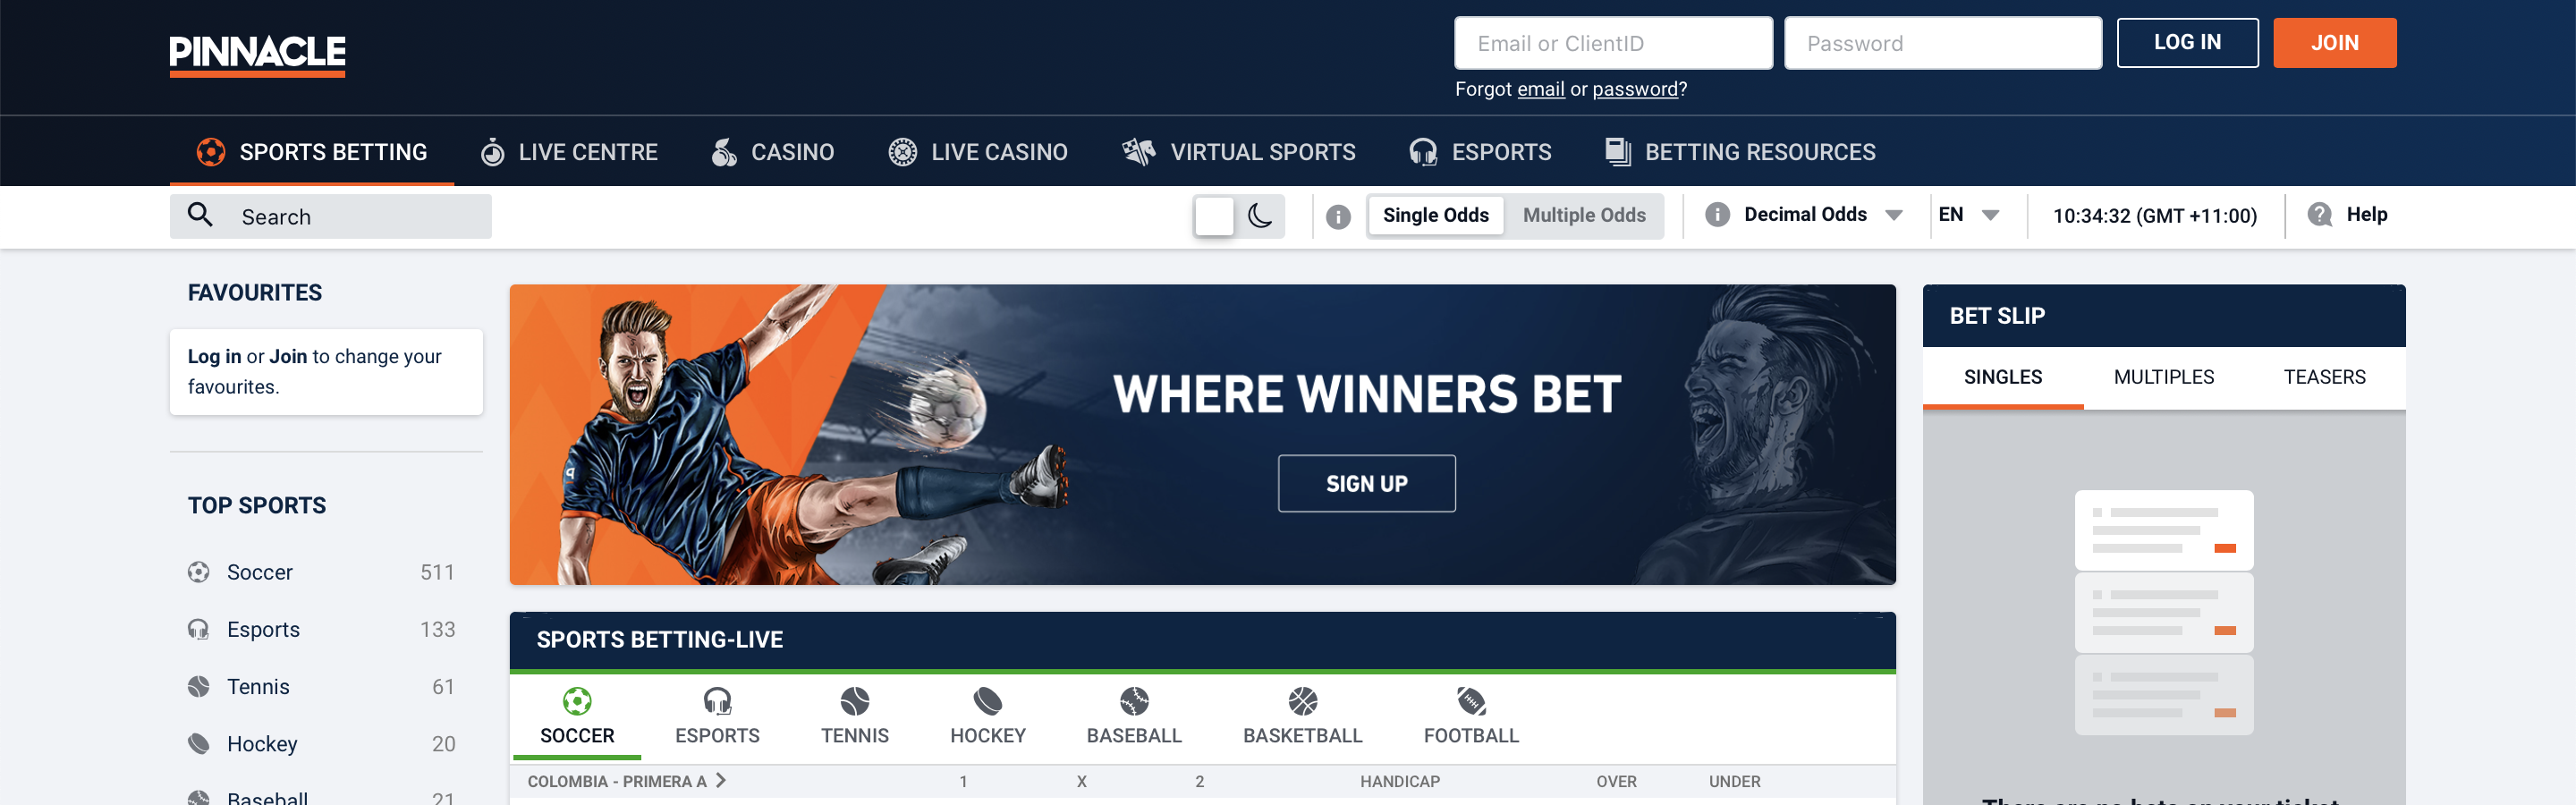 Pinnacle Betting Site Interface